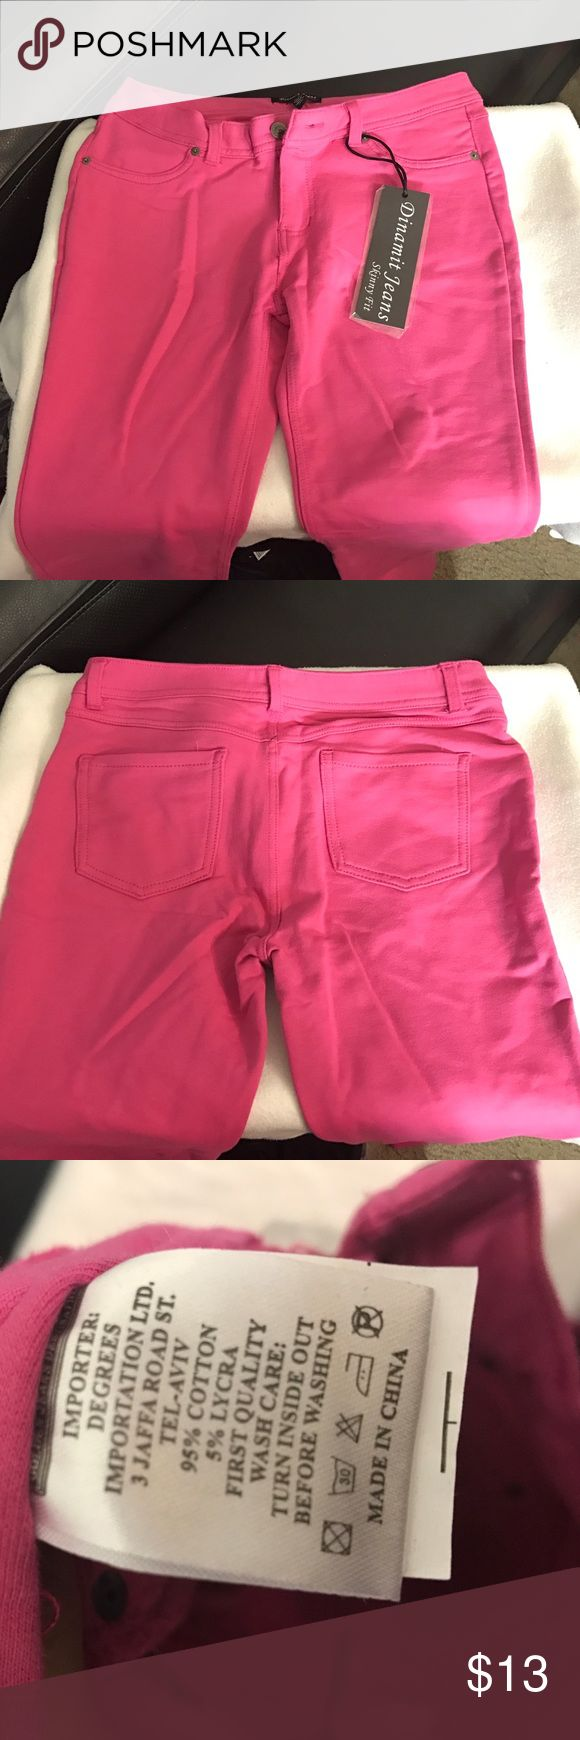 Women's jegging pants Never worn good condition ( pockets on the front isn't real pockets 😉) Other